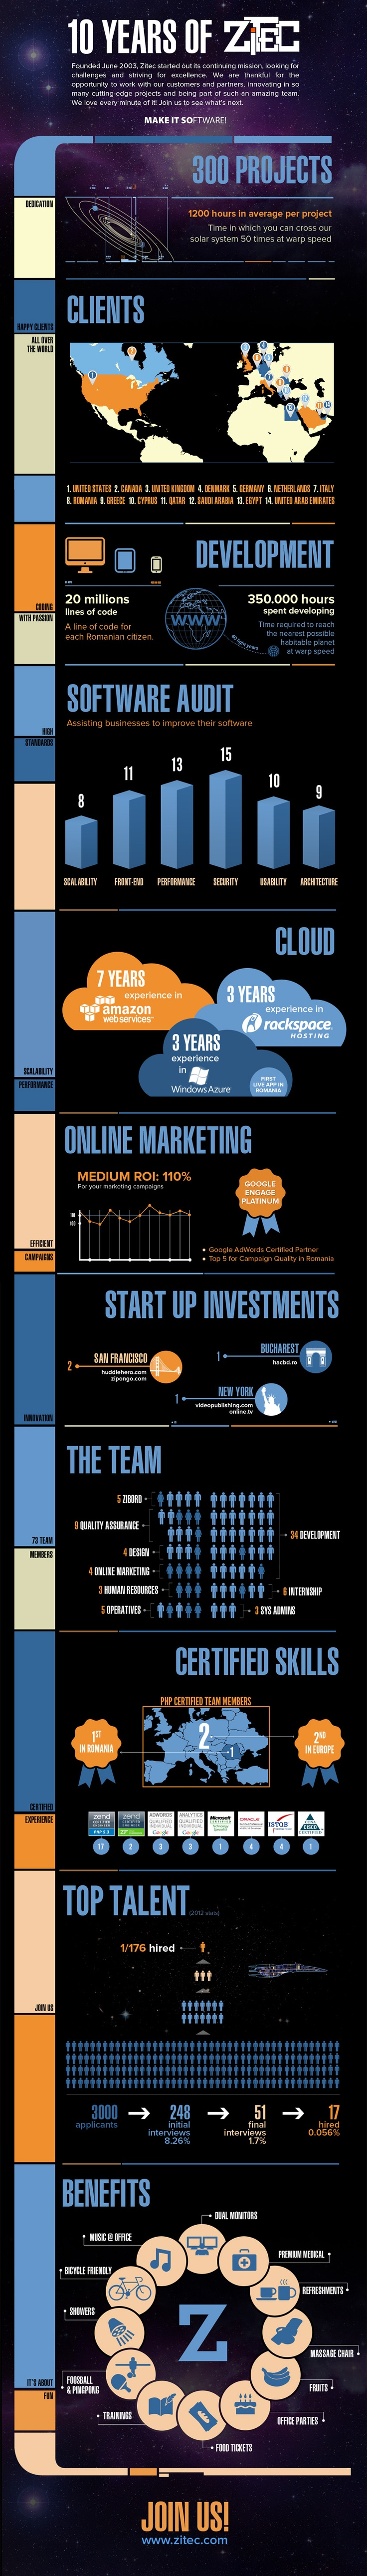 Celebrating 10 years of Zitec with an Infographic